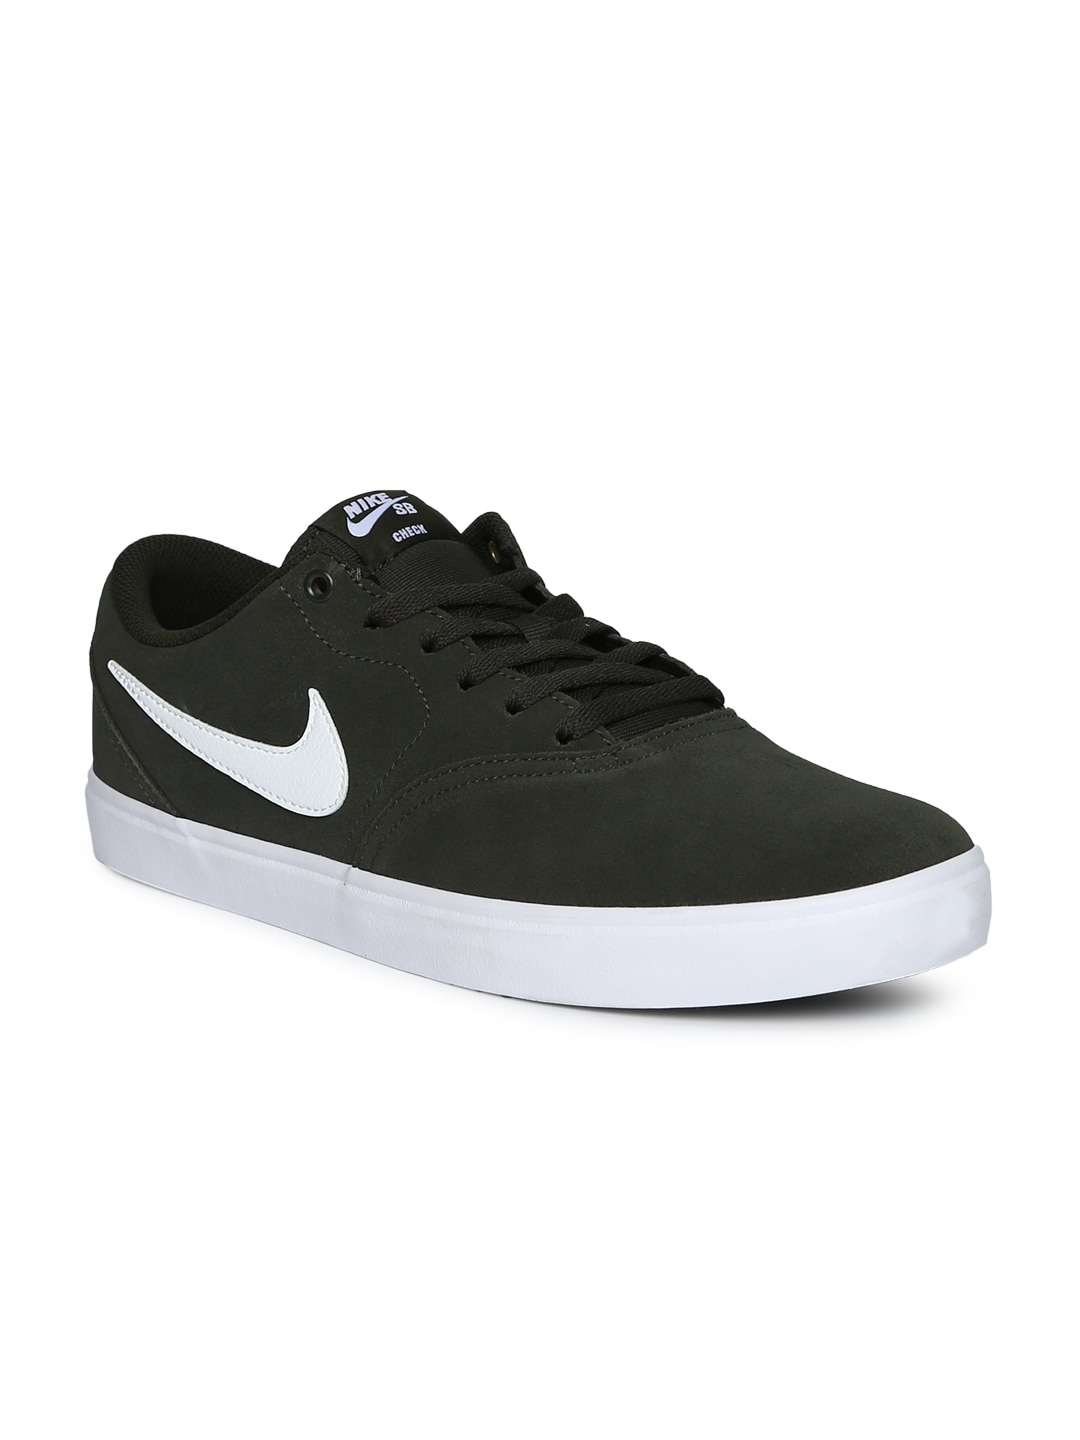 hot sale online ef349 e27f8 Nike Charcoal Shoes - Buy Nike Charcoal Shoes online in India